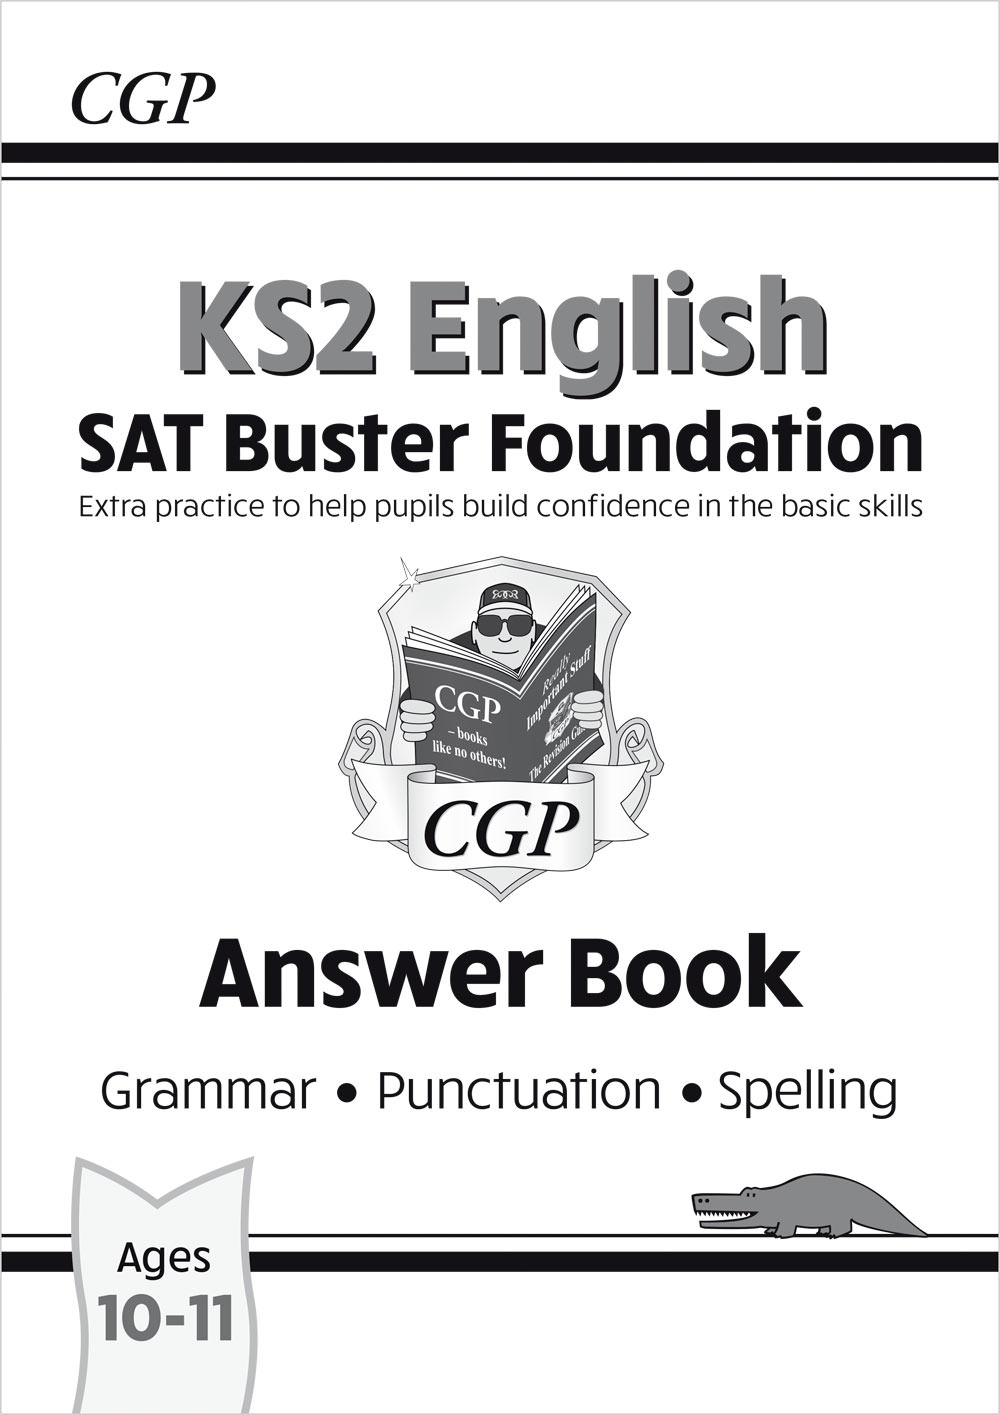 E6FGA21 - New KS2 English SAT Buster Foundation: Grammar, Punctuation & Spelling Answer Book (for 20